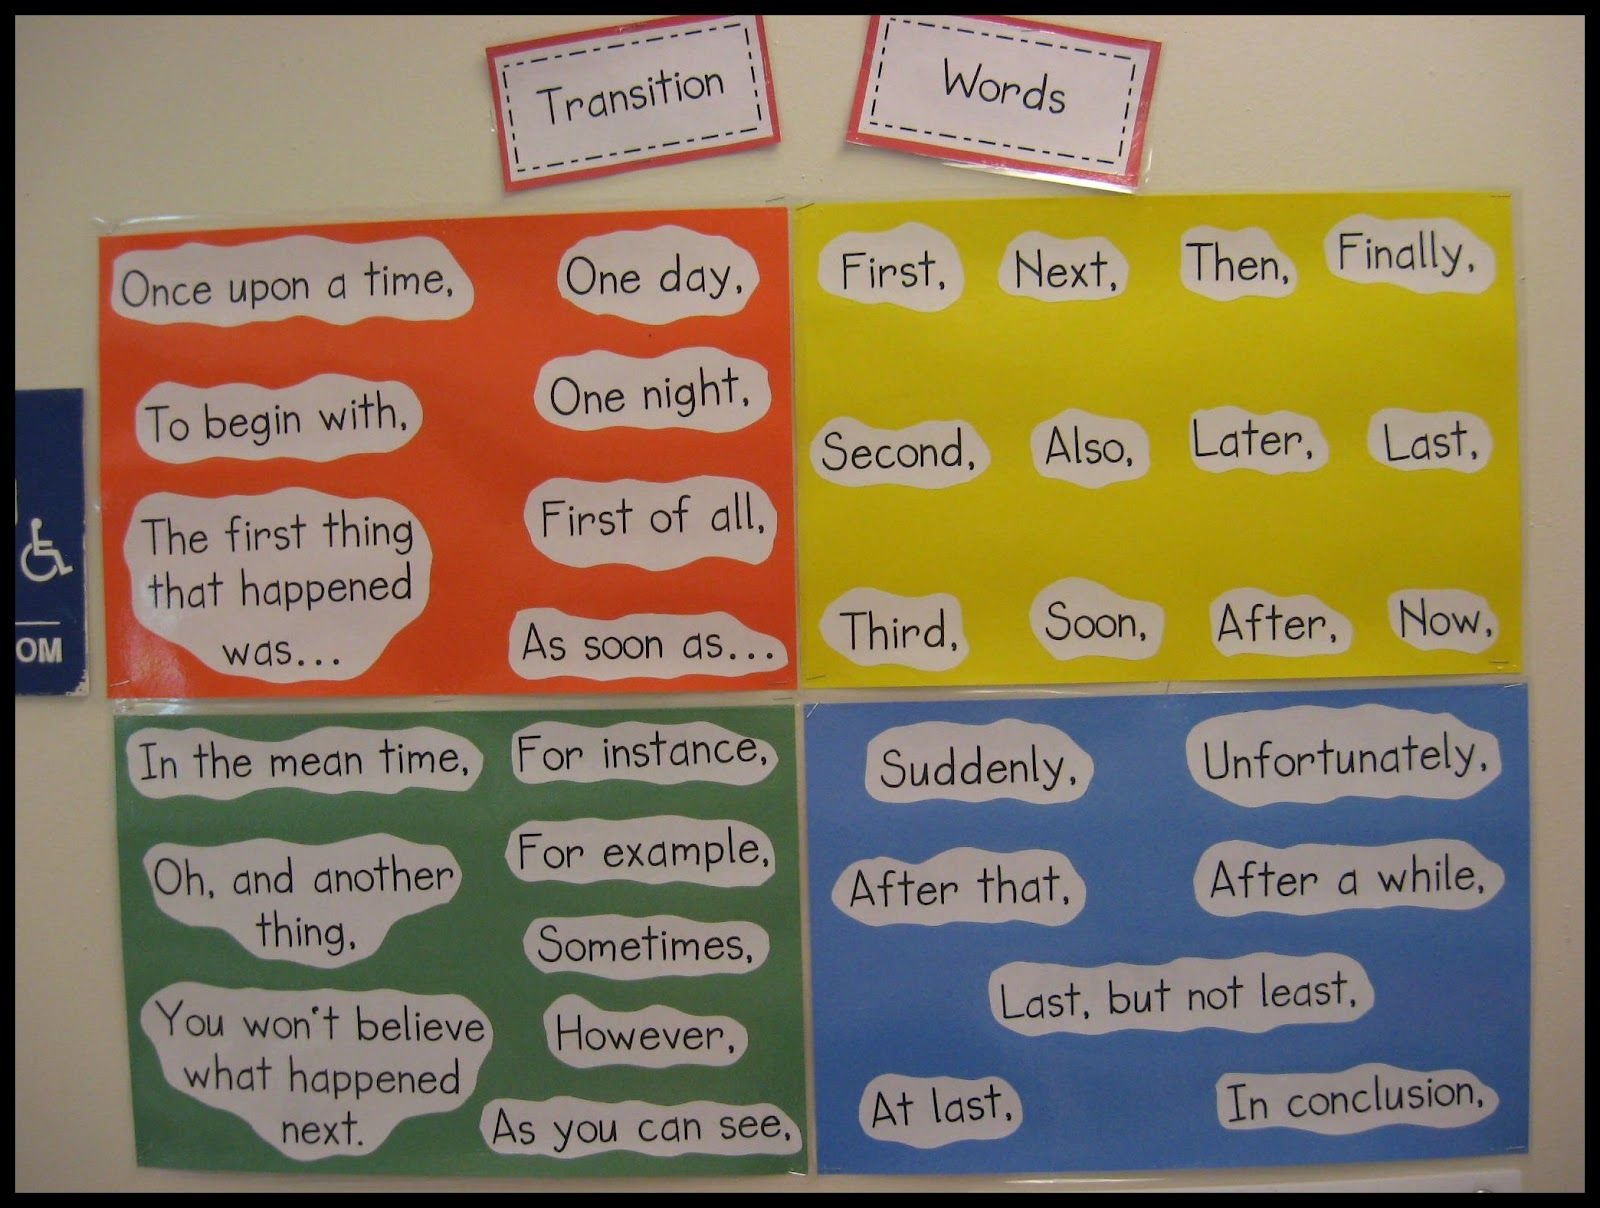 Transition Words  Break this up into separate lessons and let students  practice making sentences before expecting them to use in their writing